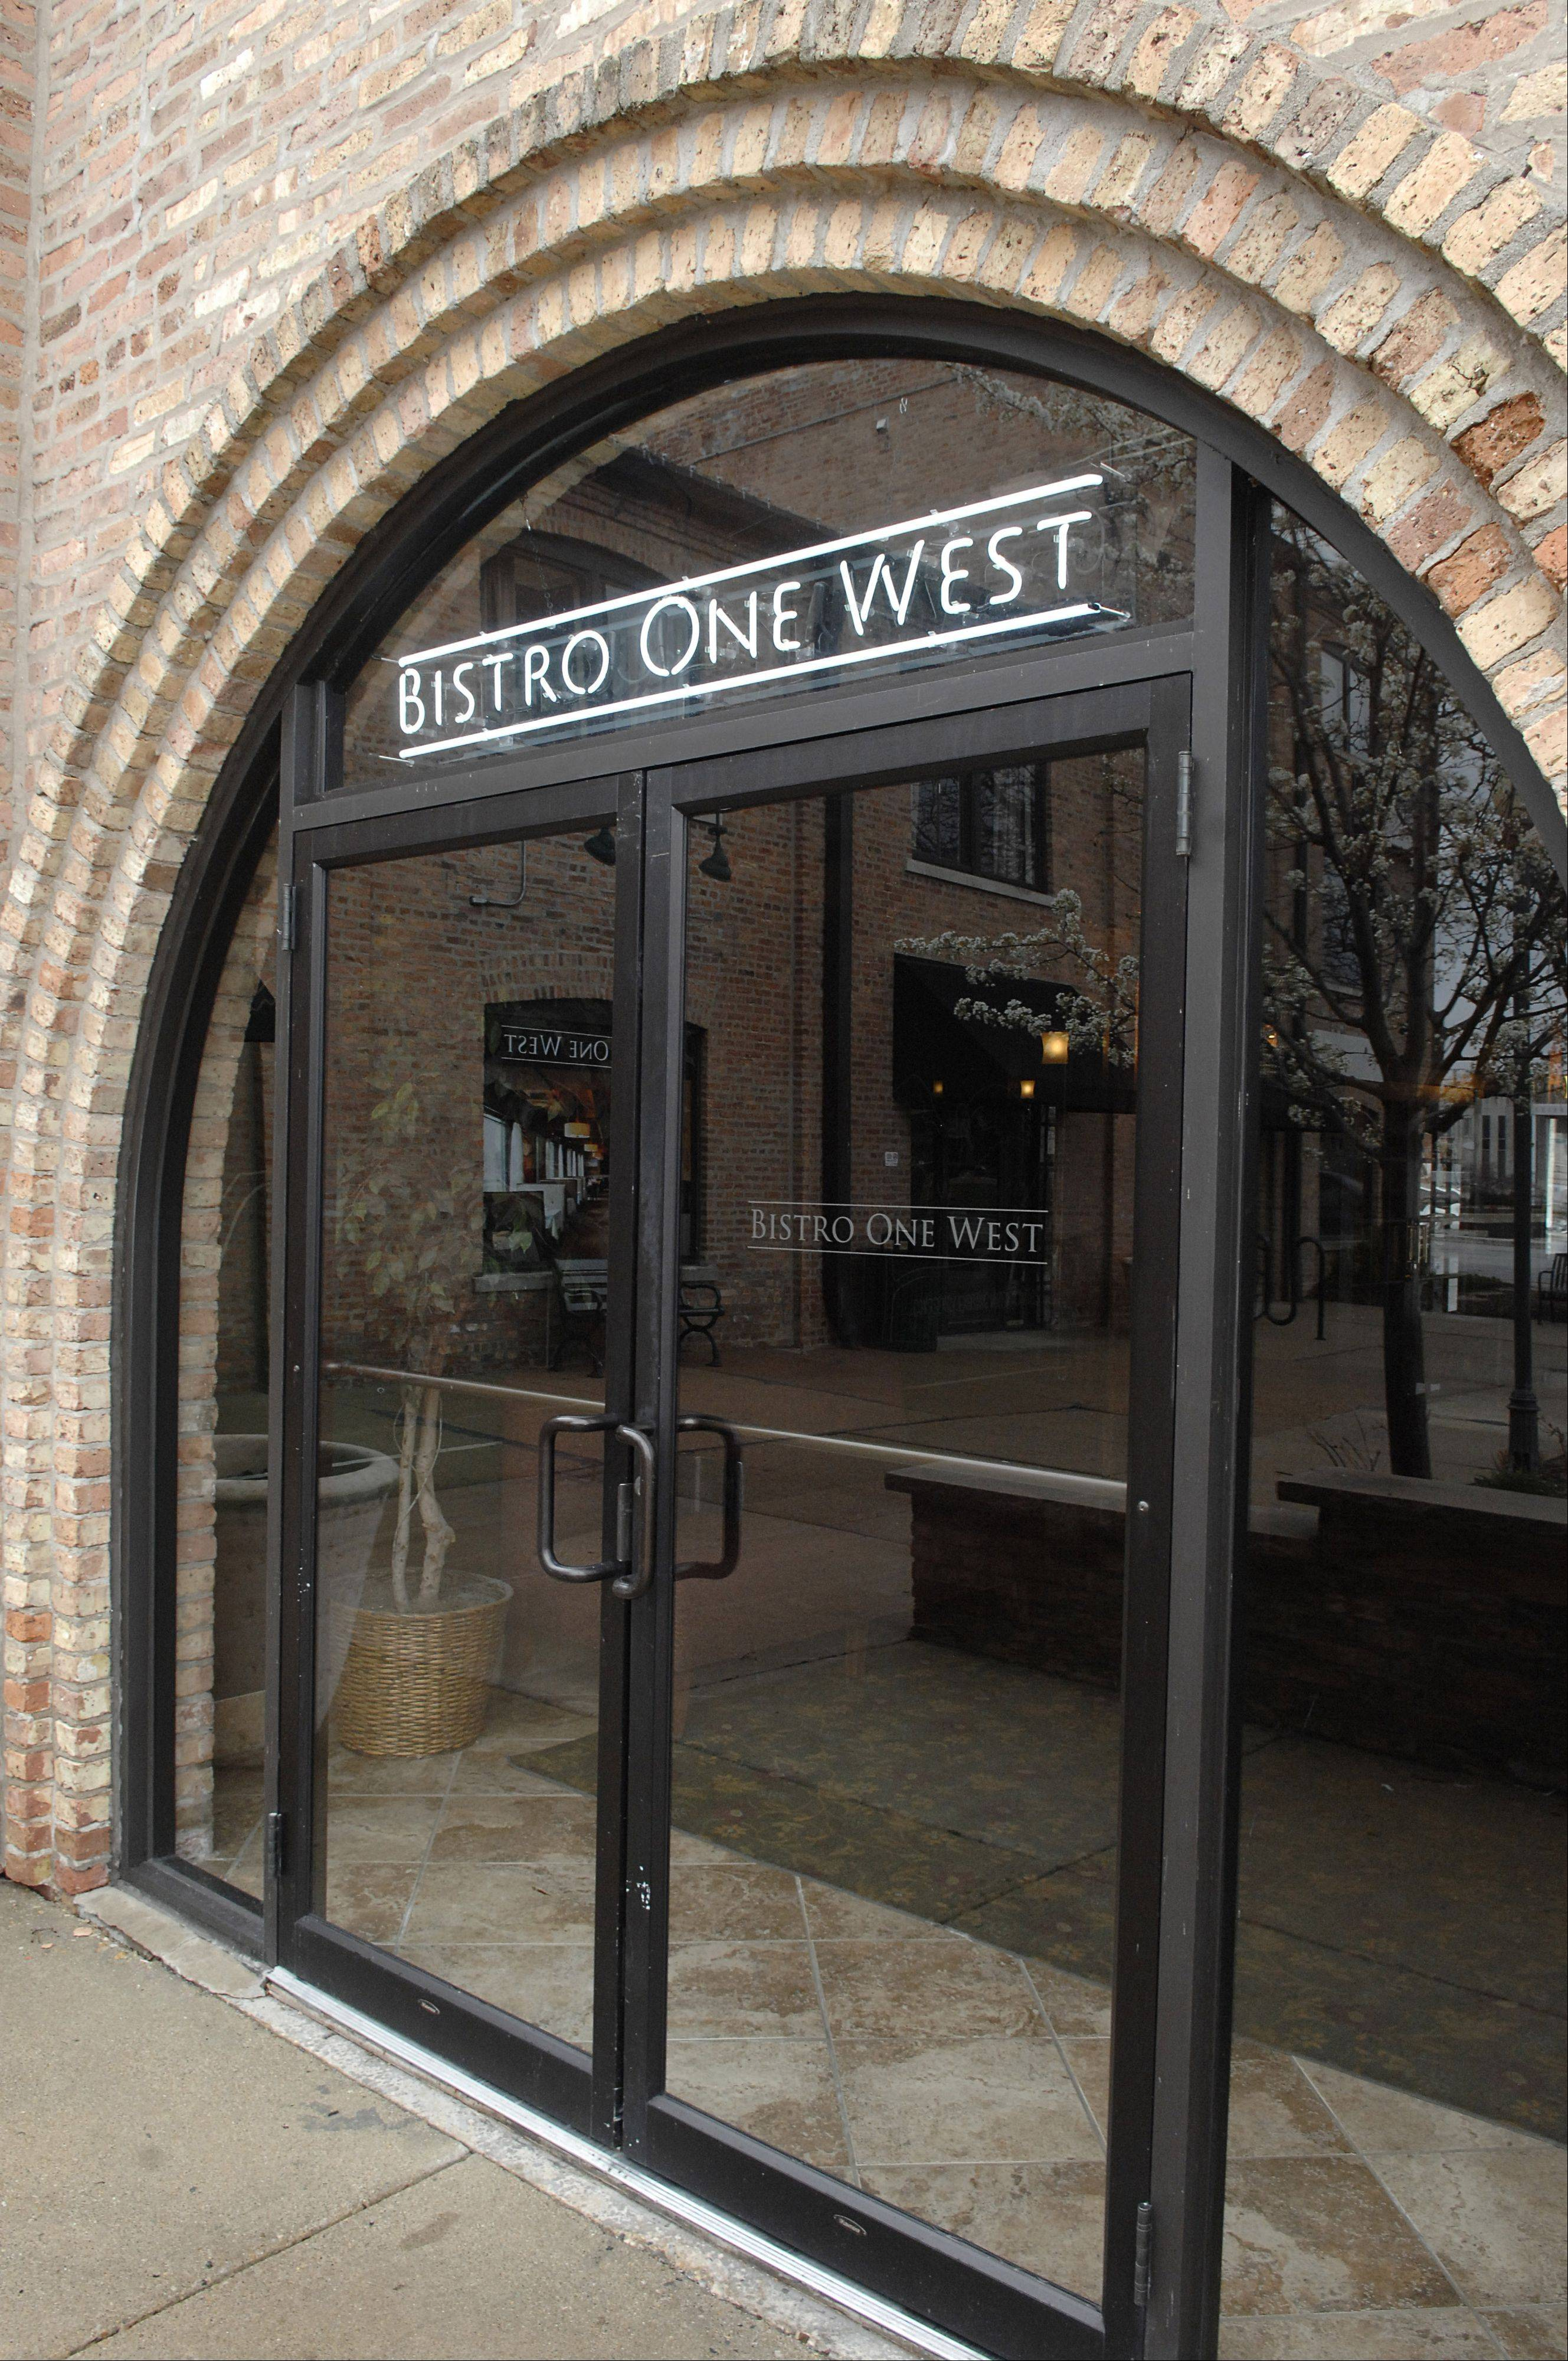 Bistro One West at 1 W. Illinois St., St. Charles will be filled with music during the St. Charles Jazz Weekend.